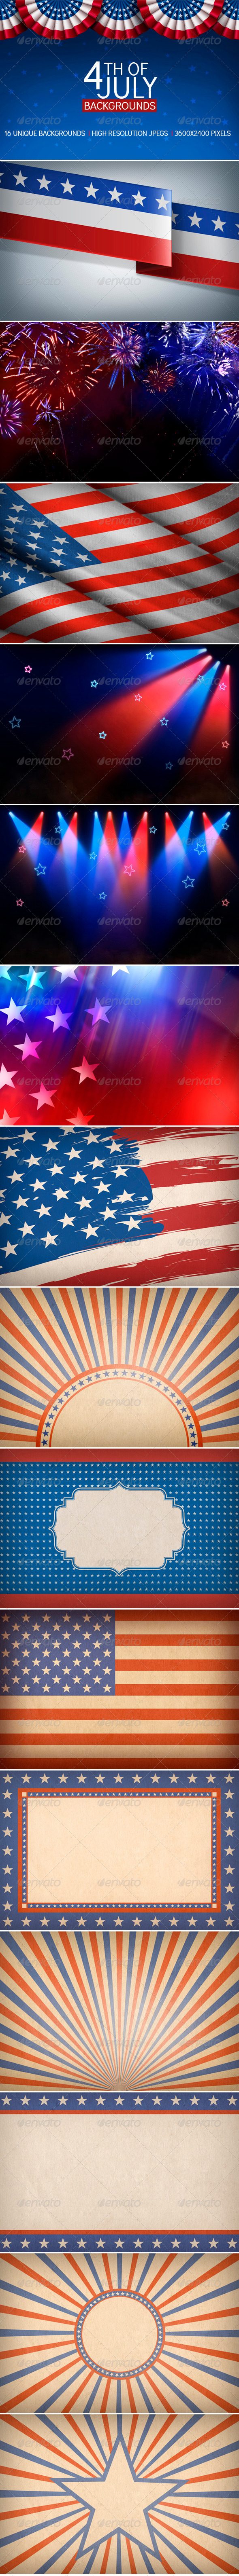 GraphicRiver 4th of July Backgrounds 4690864